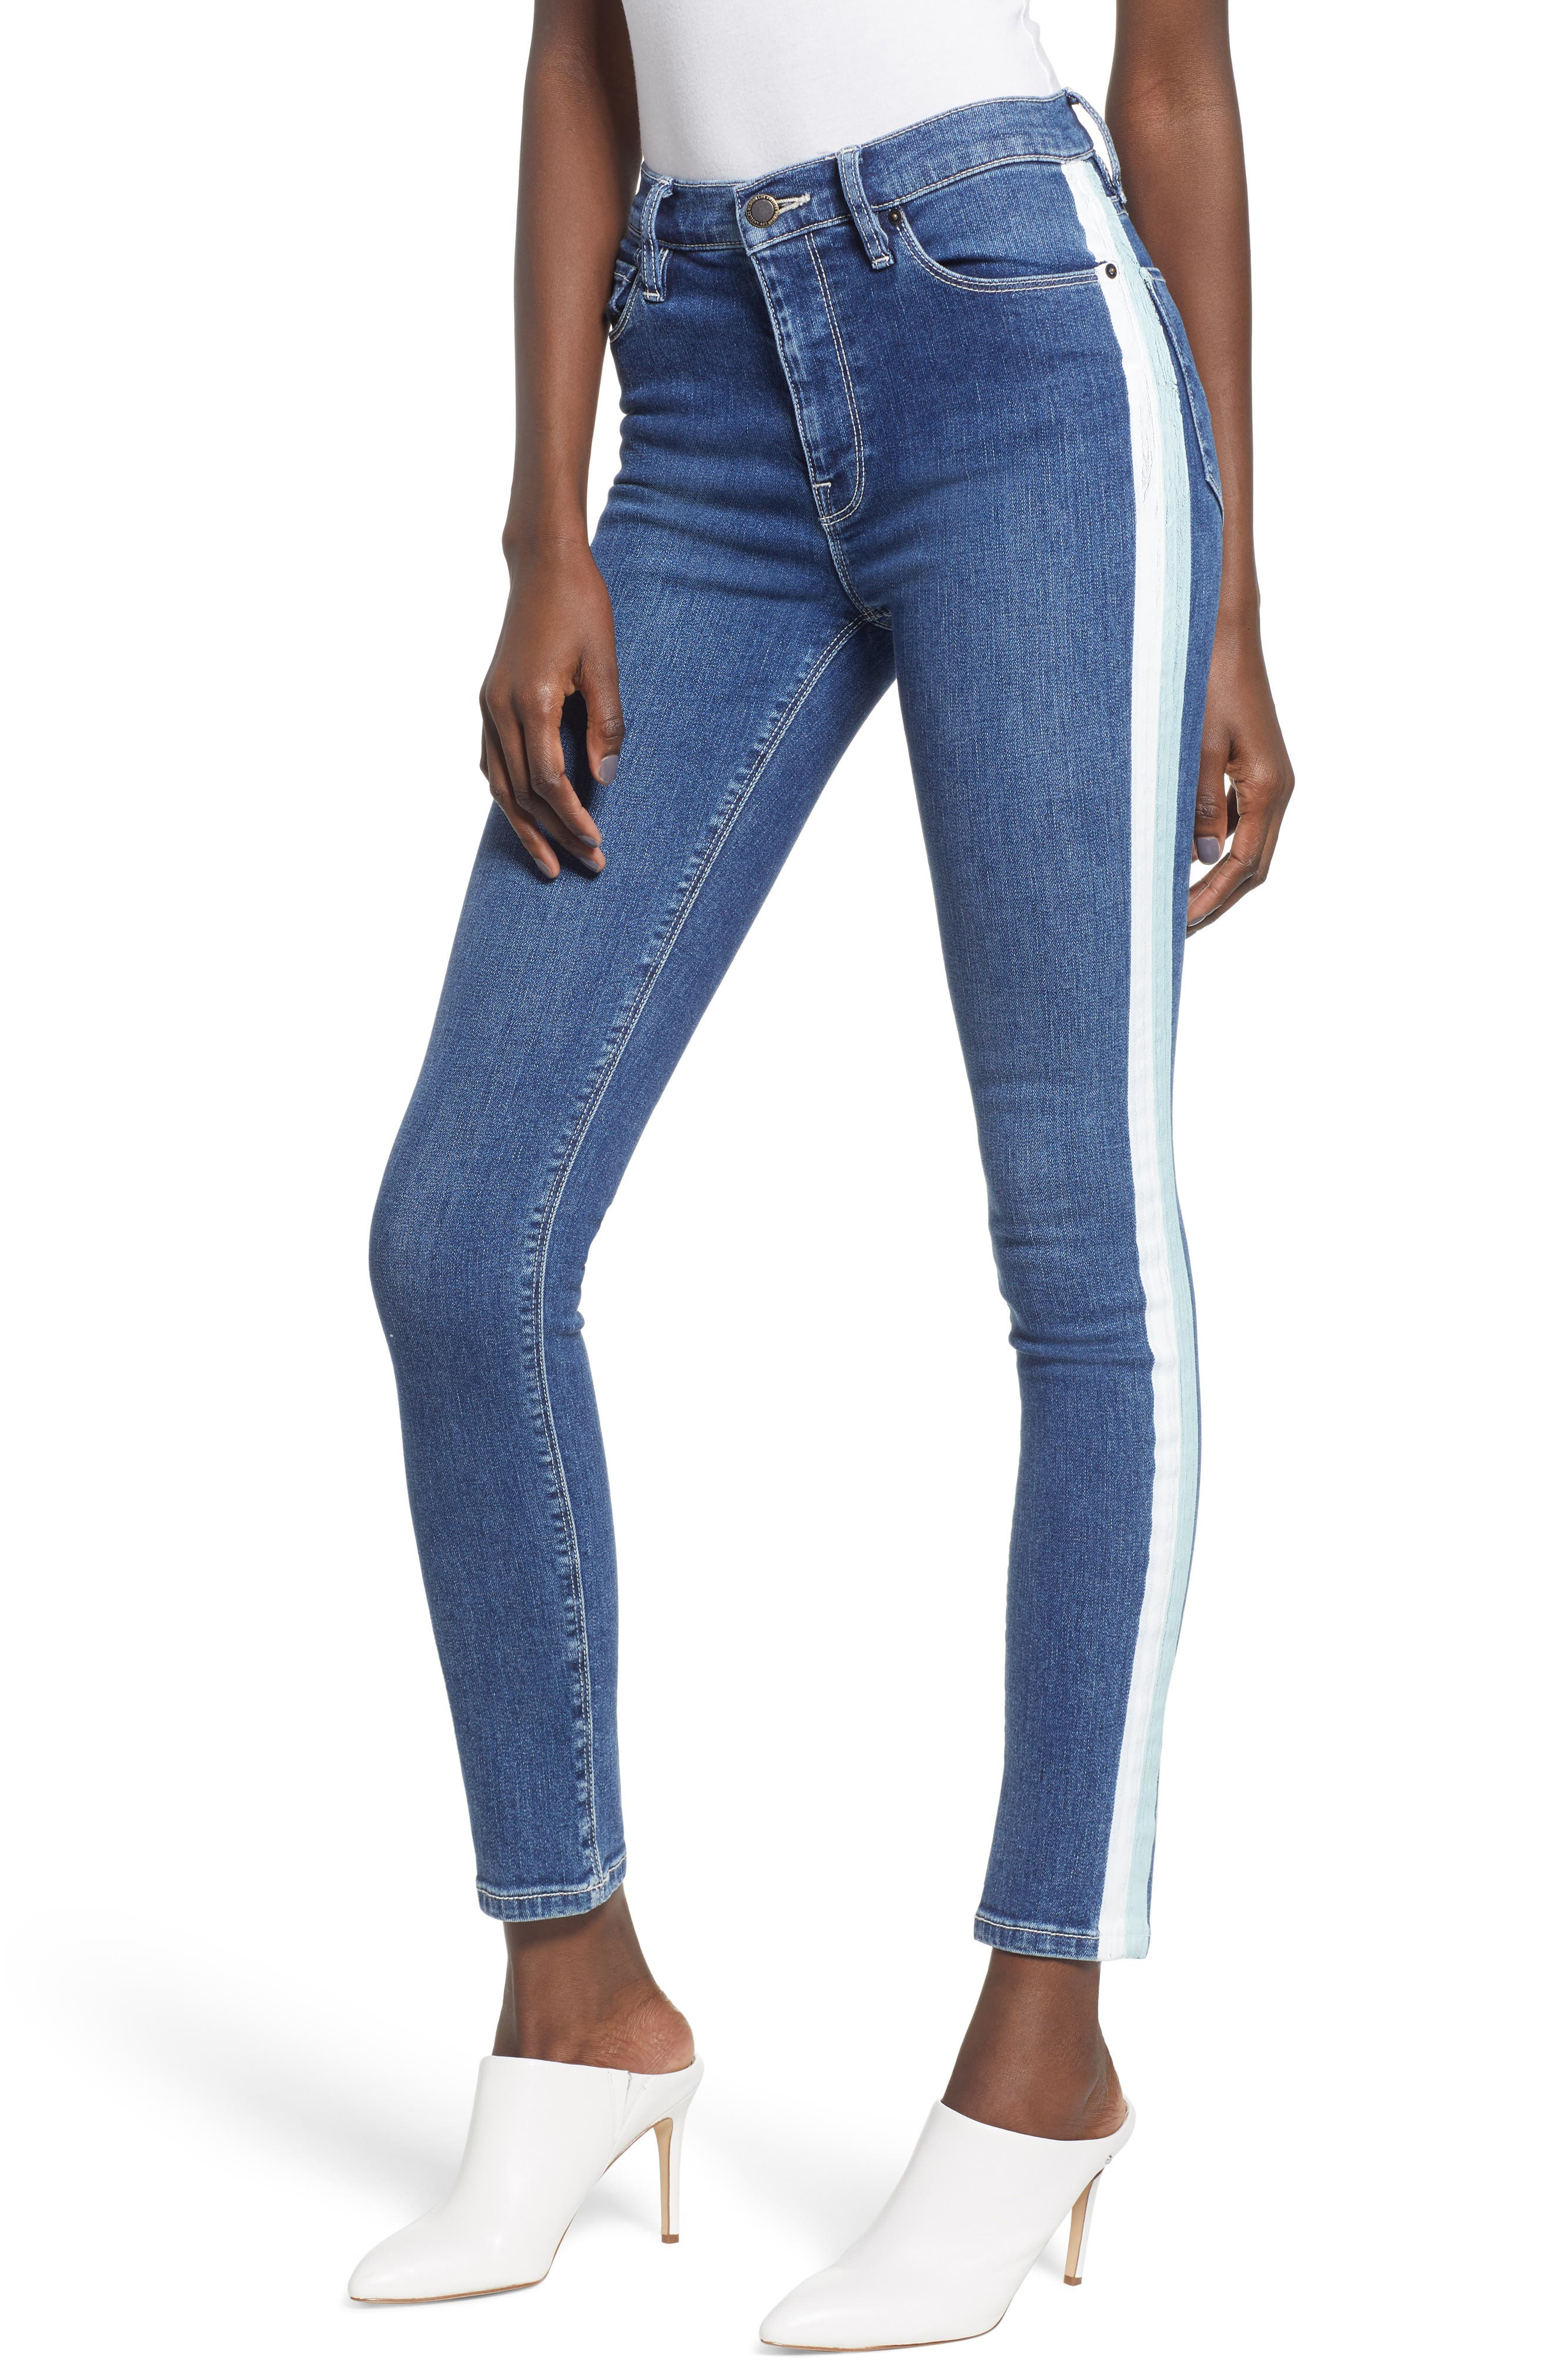 Barbara High Waist Ankle Skinny Jeans,                             Main thumbnail 1, color,                             403